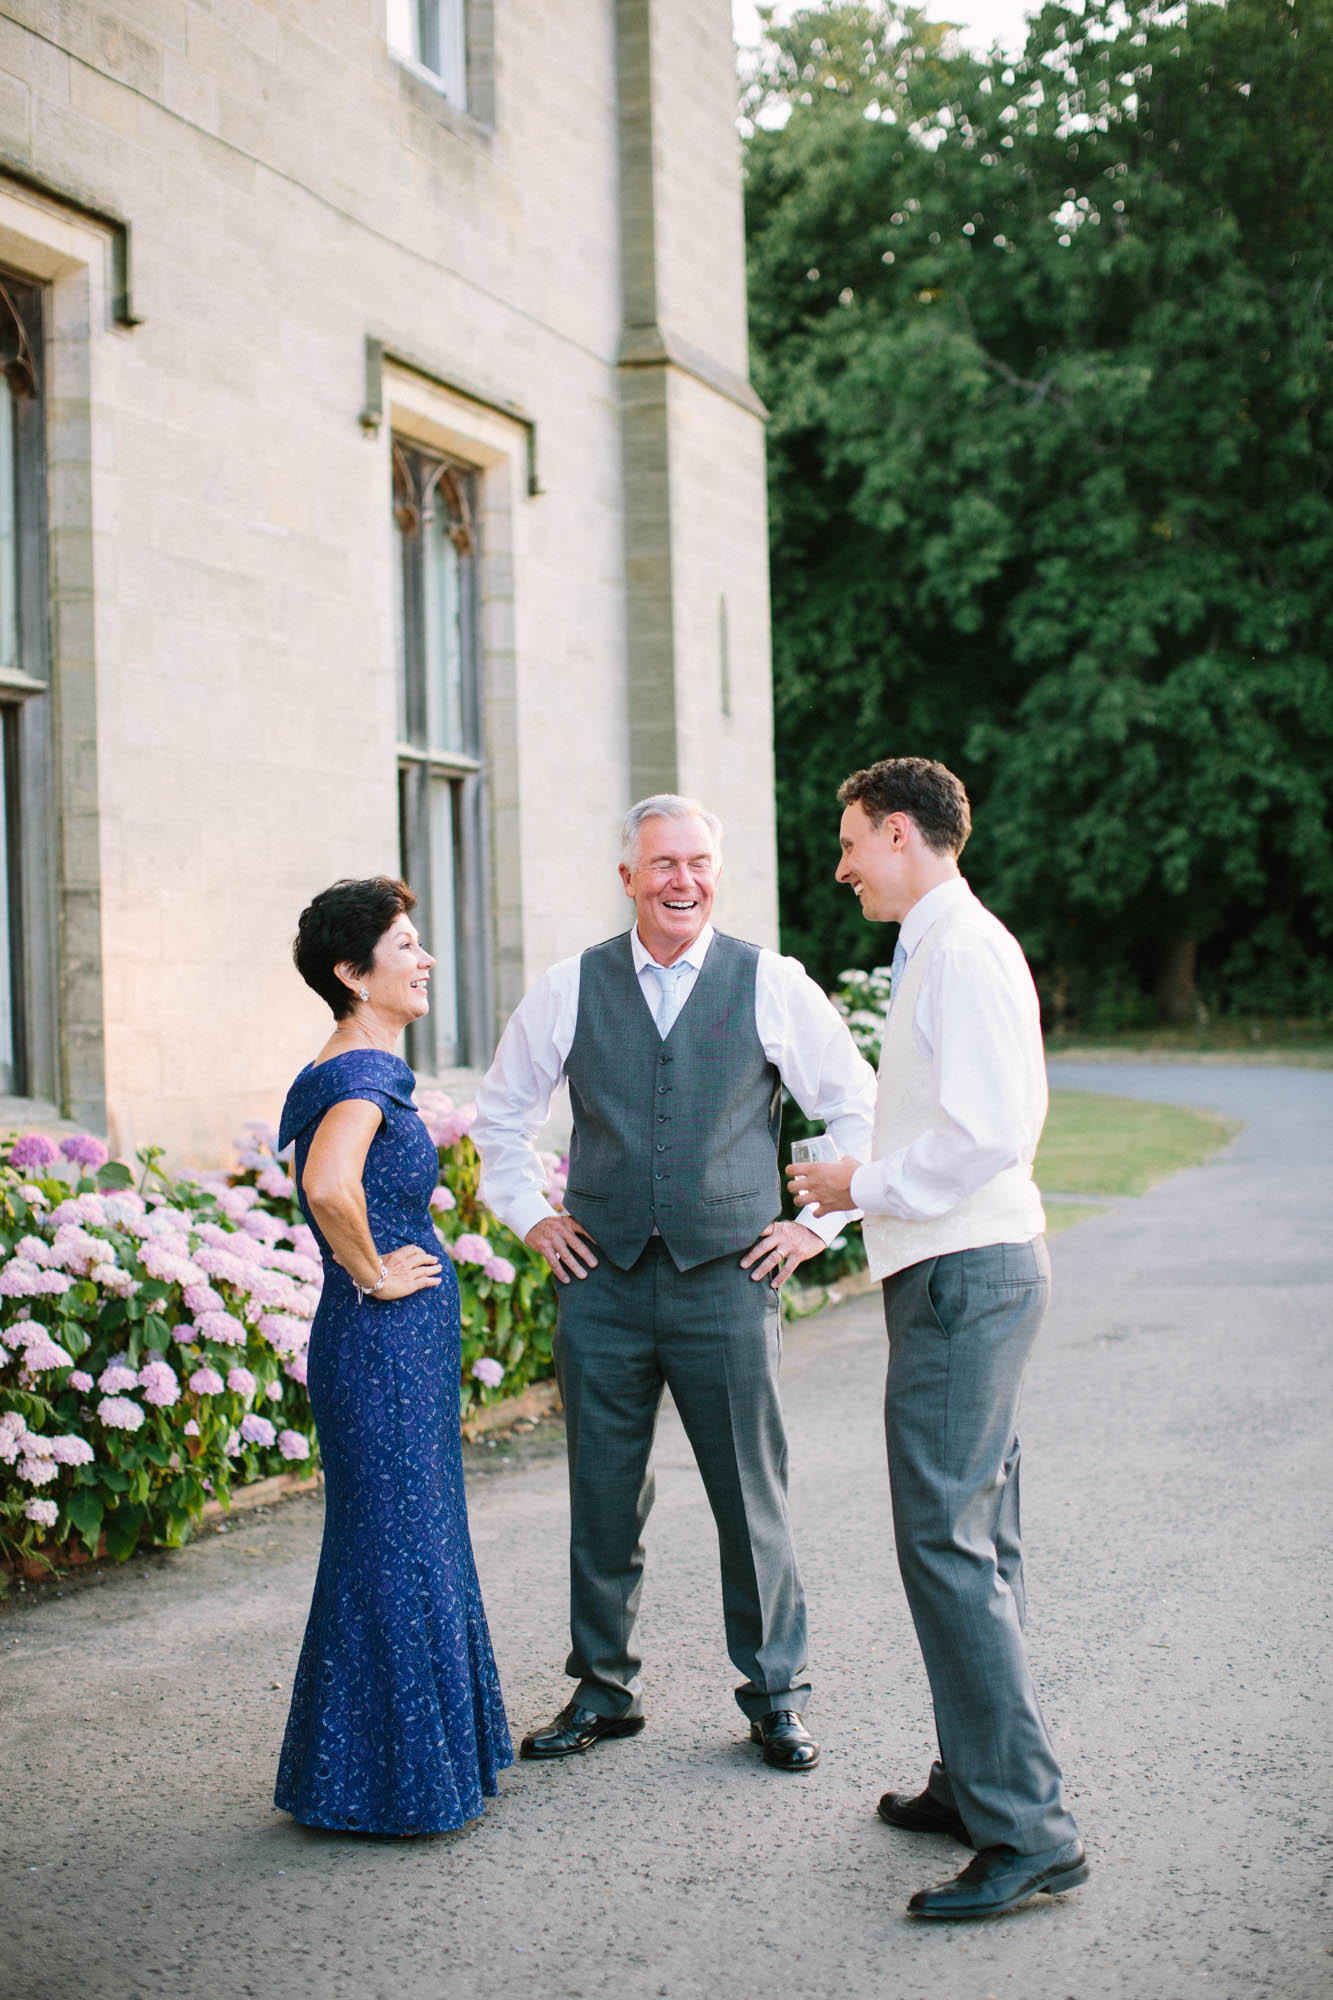 Groom chatting to bride's parents outside Chiddingstone Castle wedding